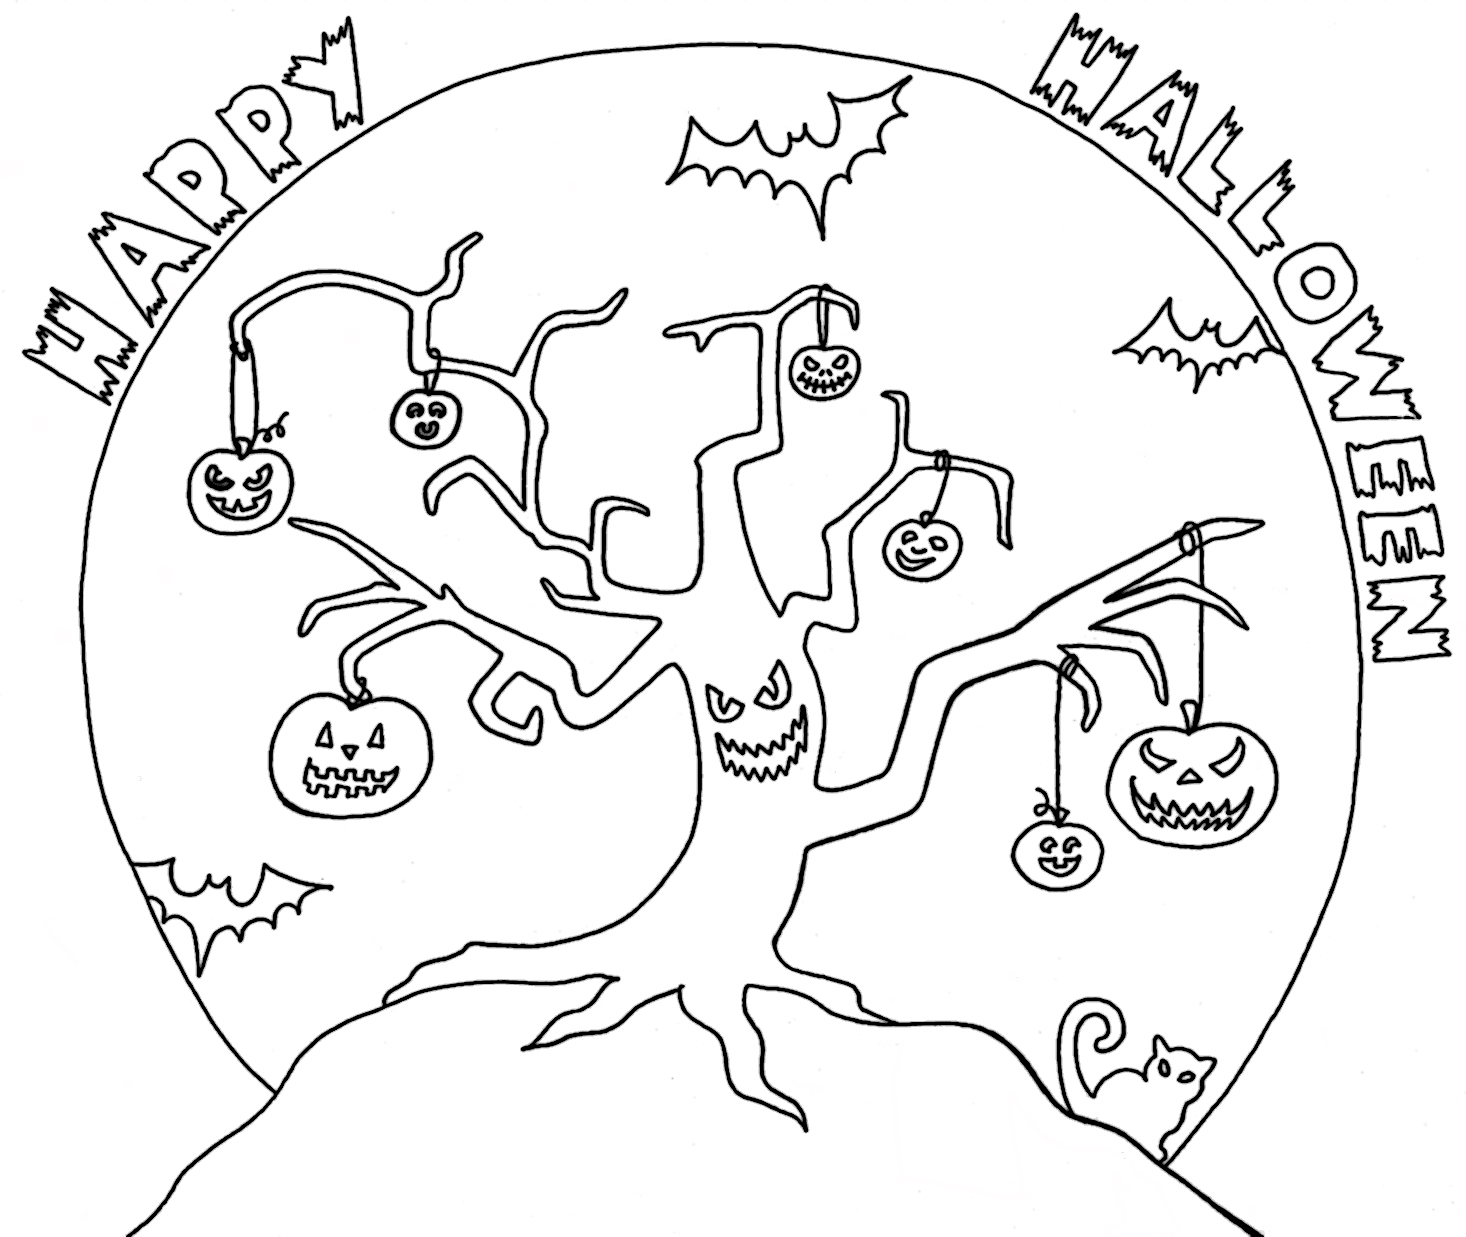 coloring pages 28 october attack - photo#25